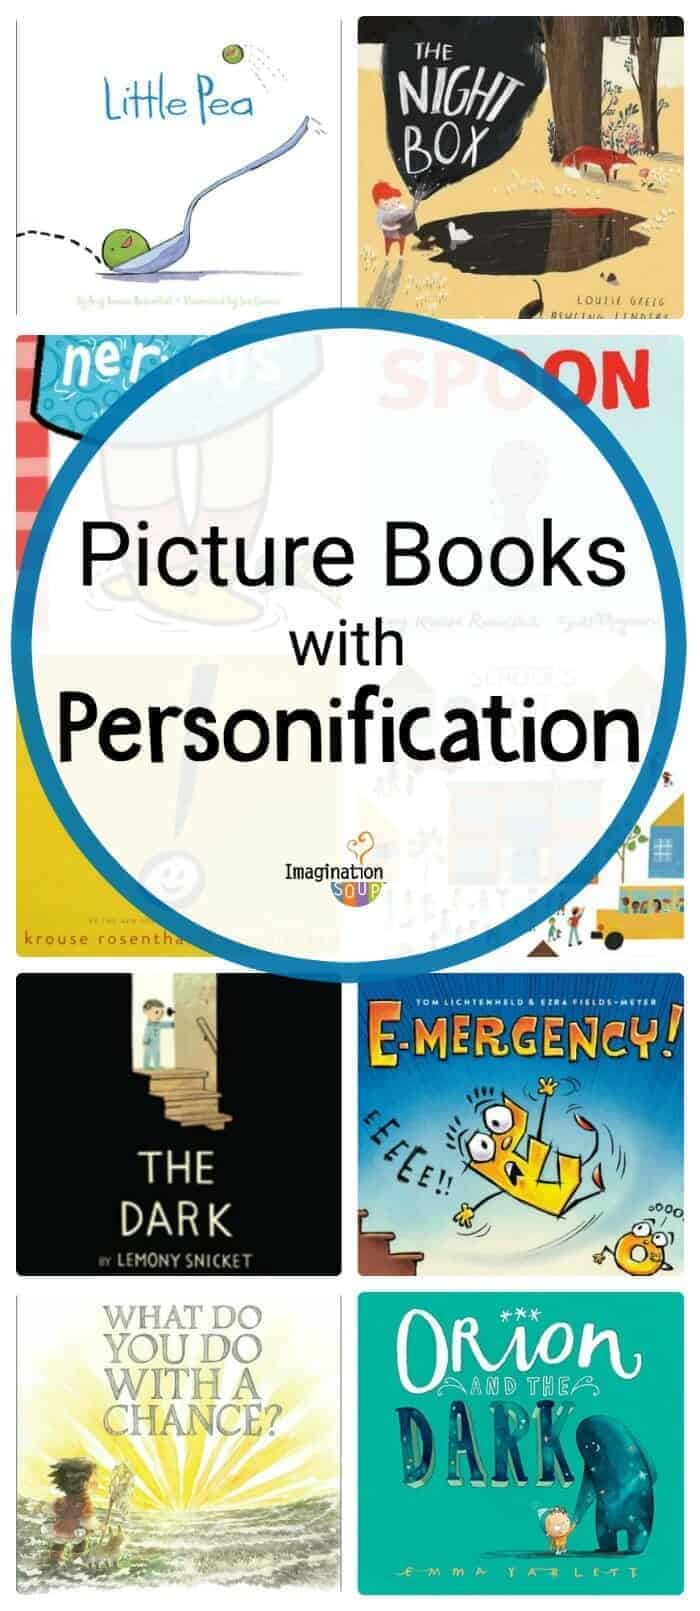 picture books with personification to use as mentor text in writing workshop